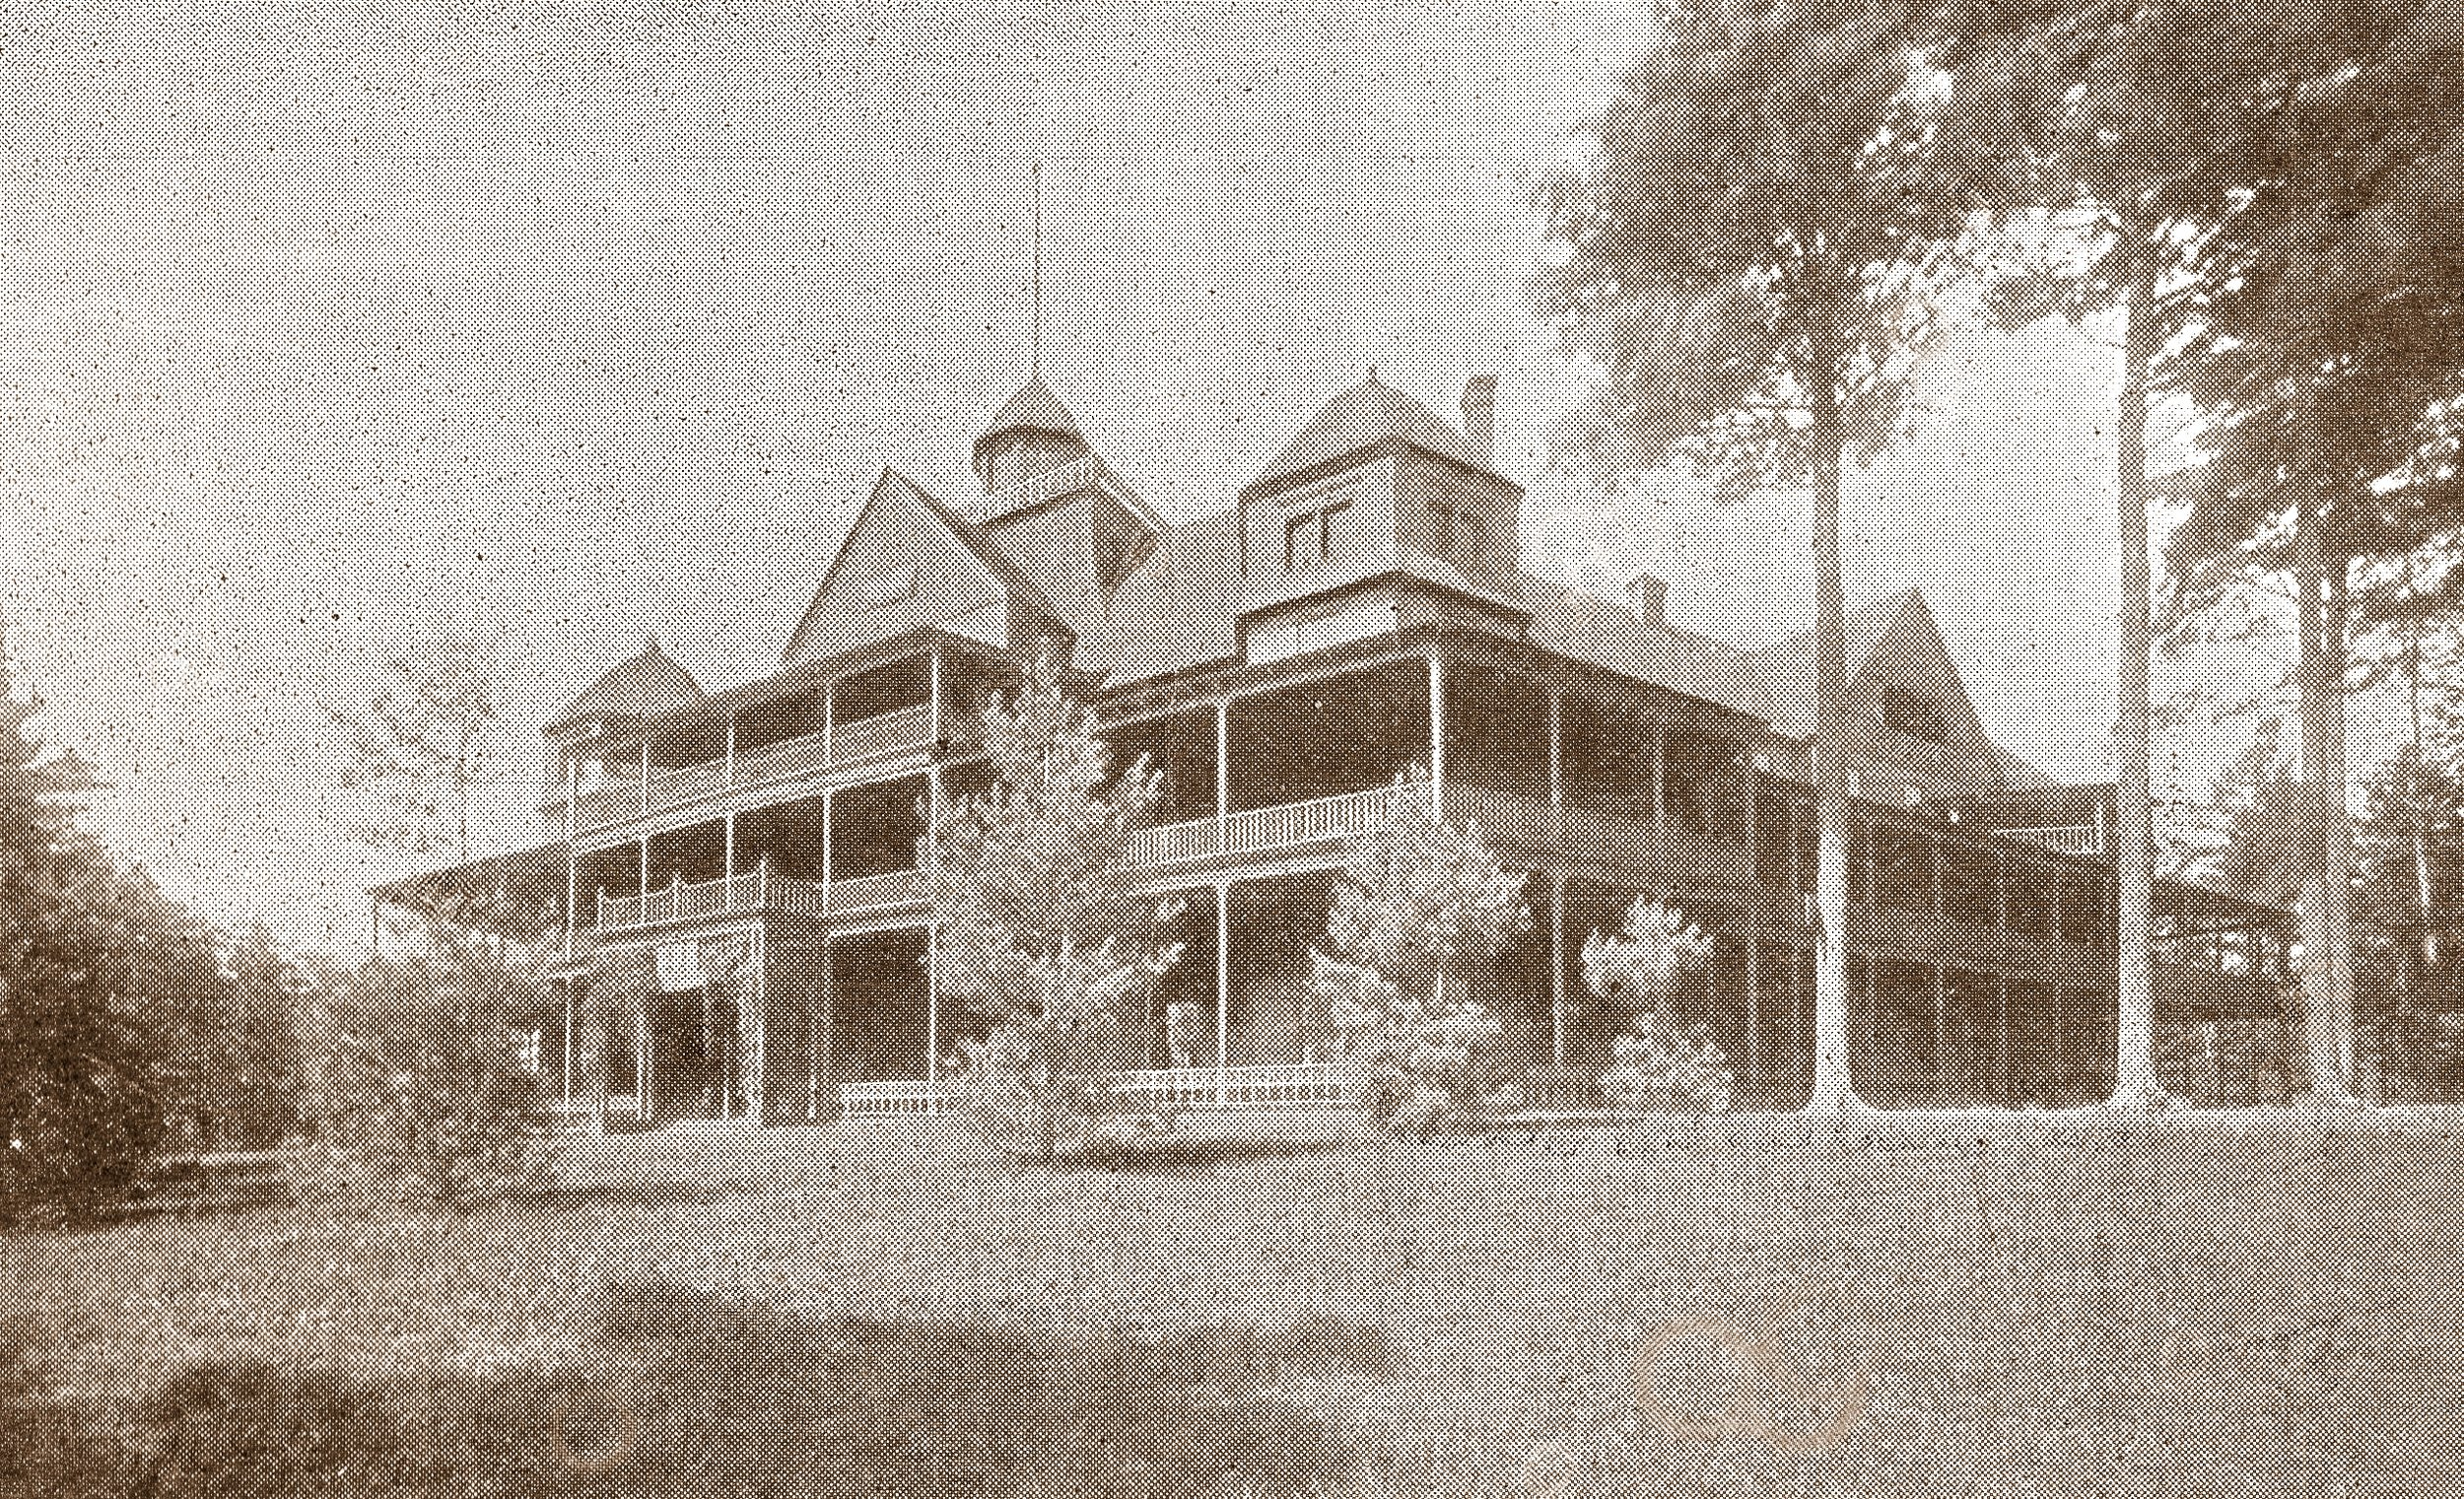 THIS PHOTO SHOWS THE HOTEL BALMORAL ON THE SUMMIT OF MT. MCGREGOR IN 1897 THE YEAR IT WAS LOST TO FIRE.